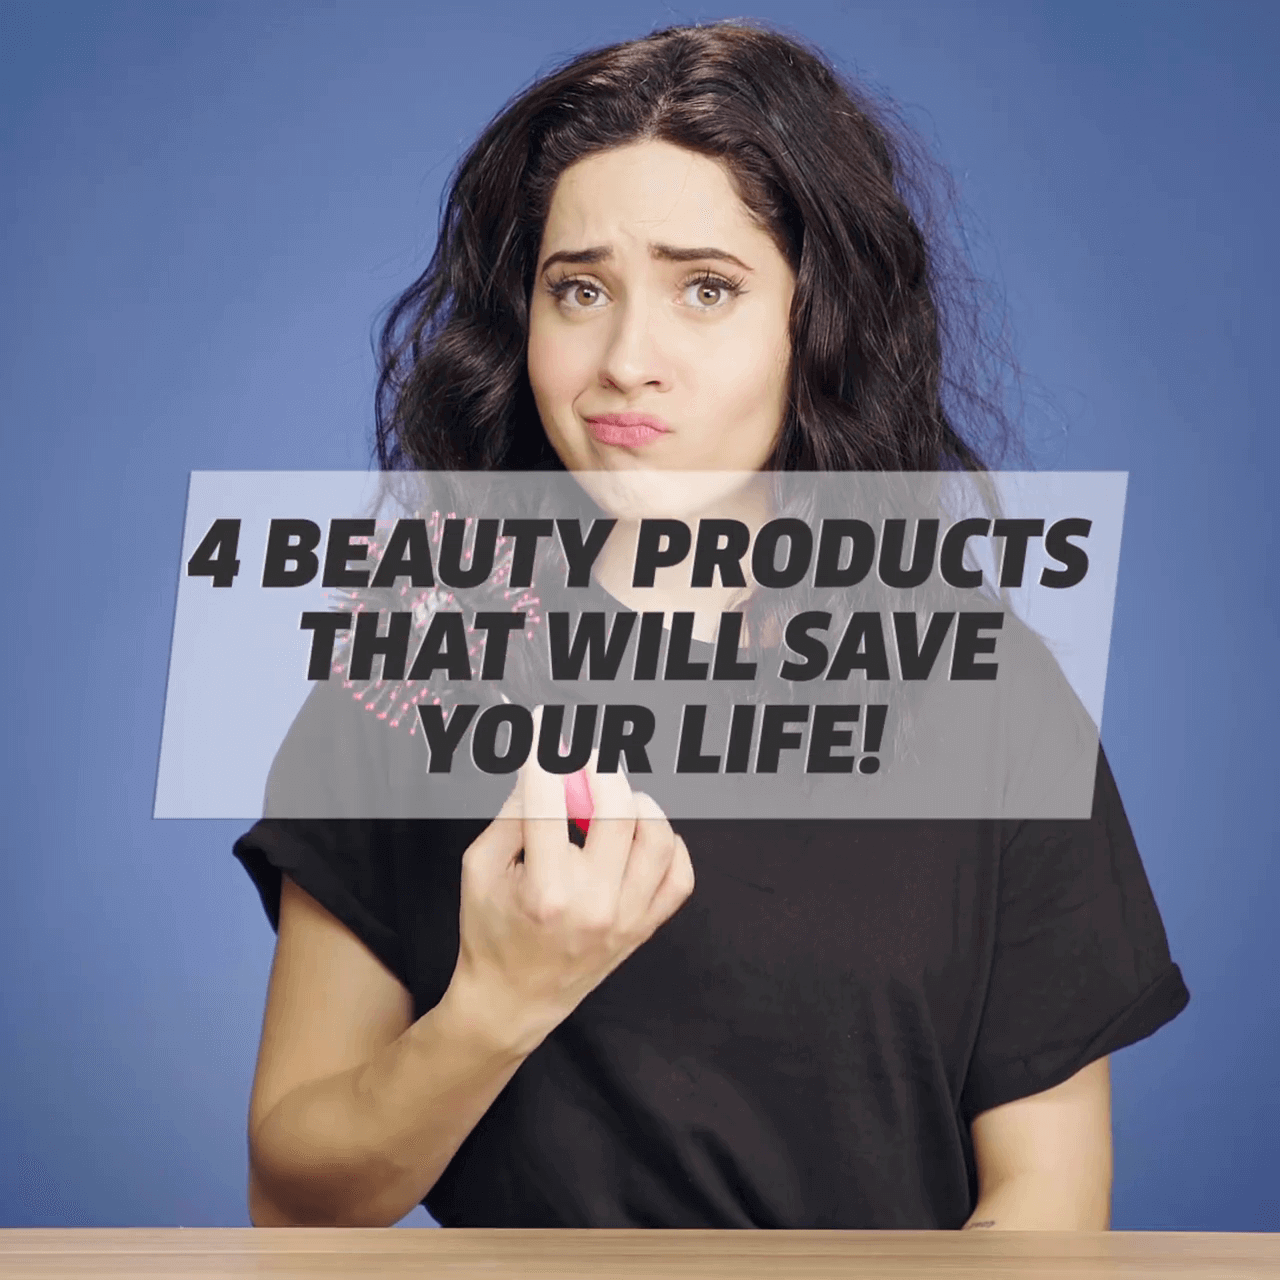 4 Beauty Products That Will Save Your Life